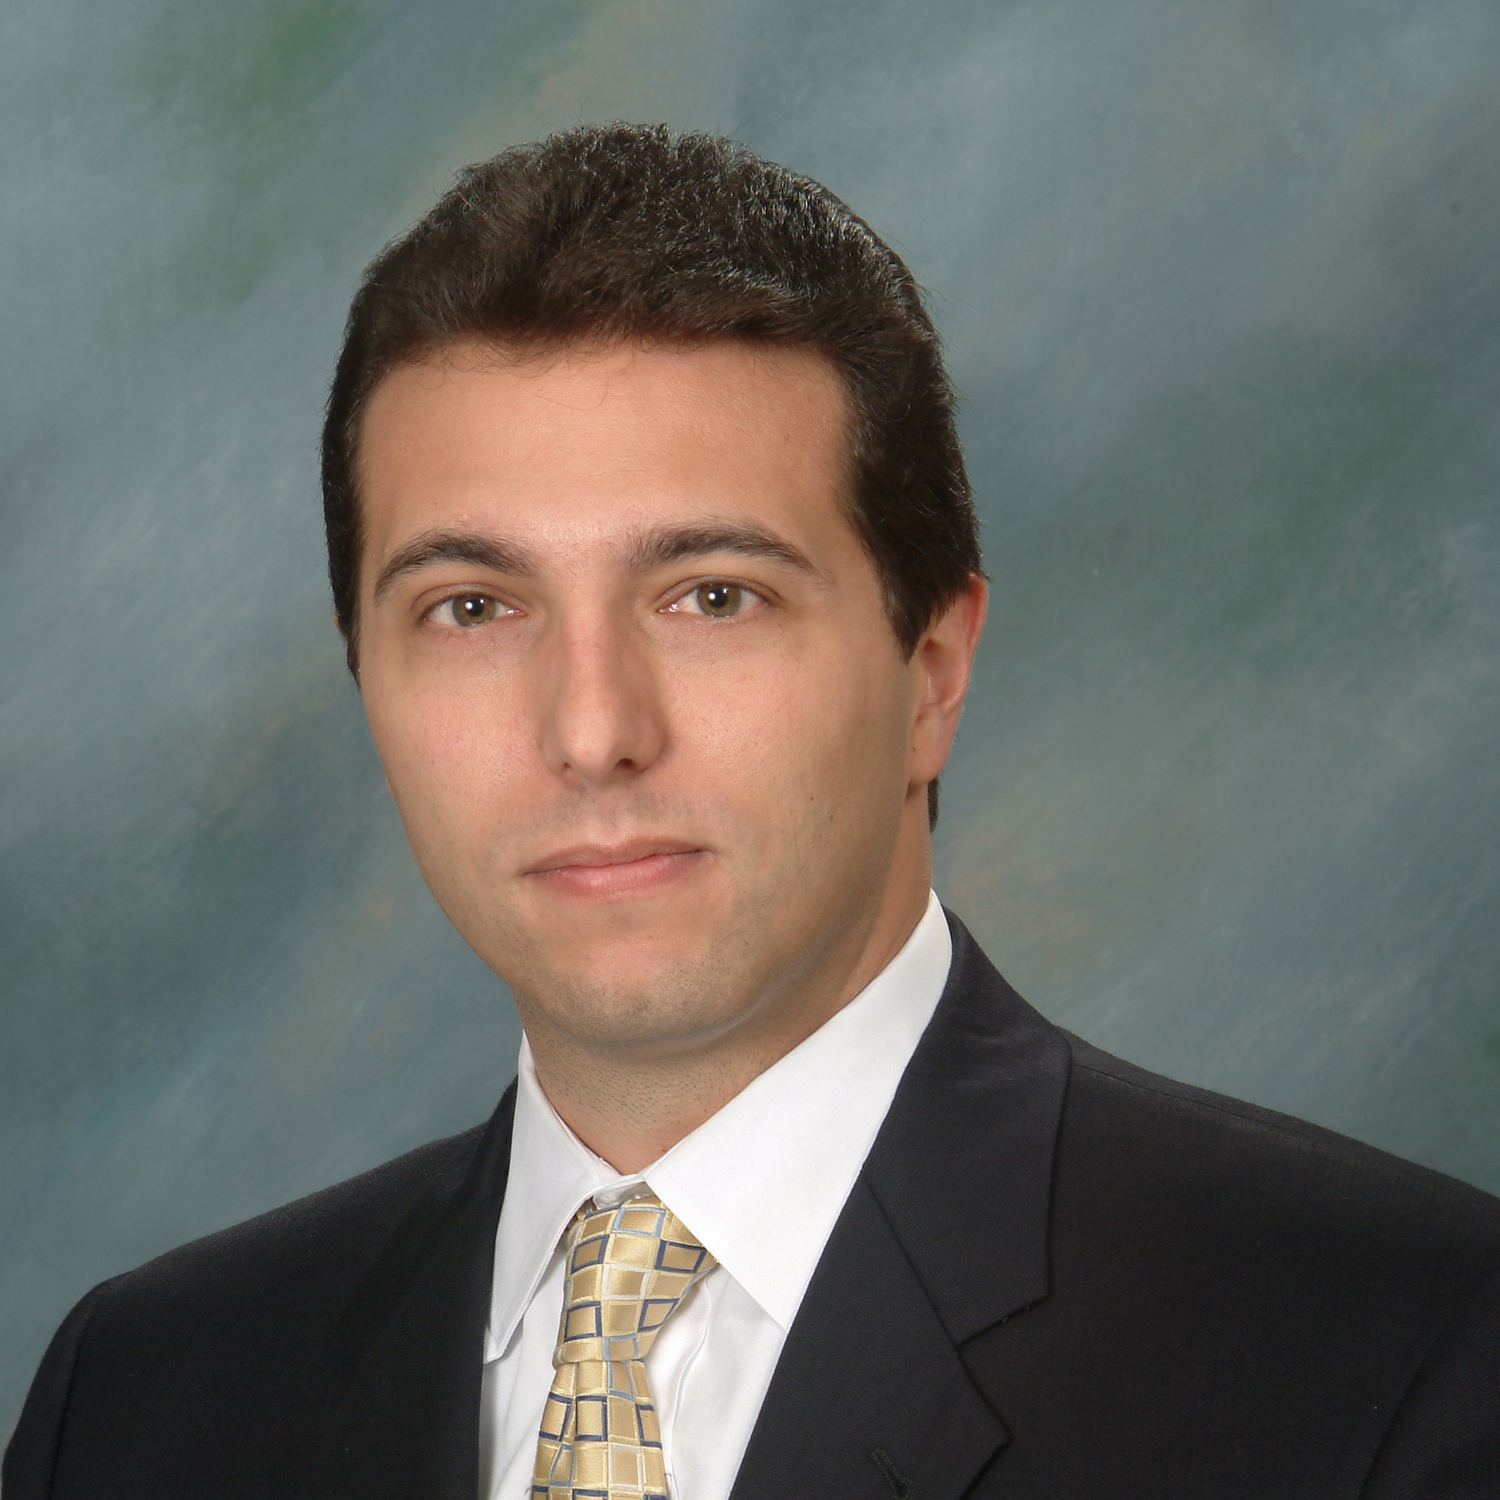 Michael Greco, financial advisor Belvidere NJ